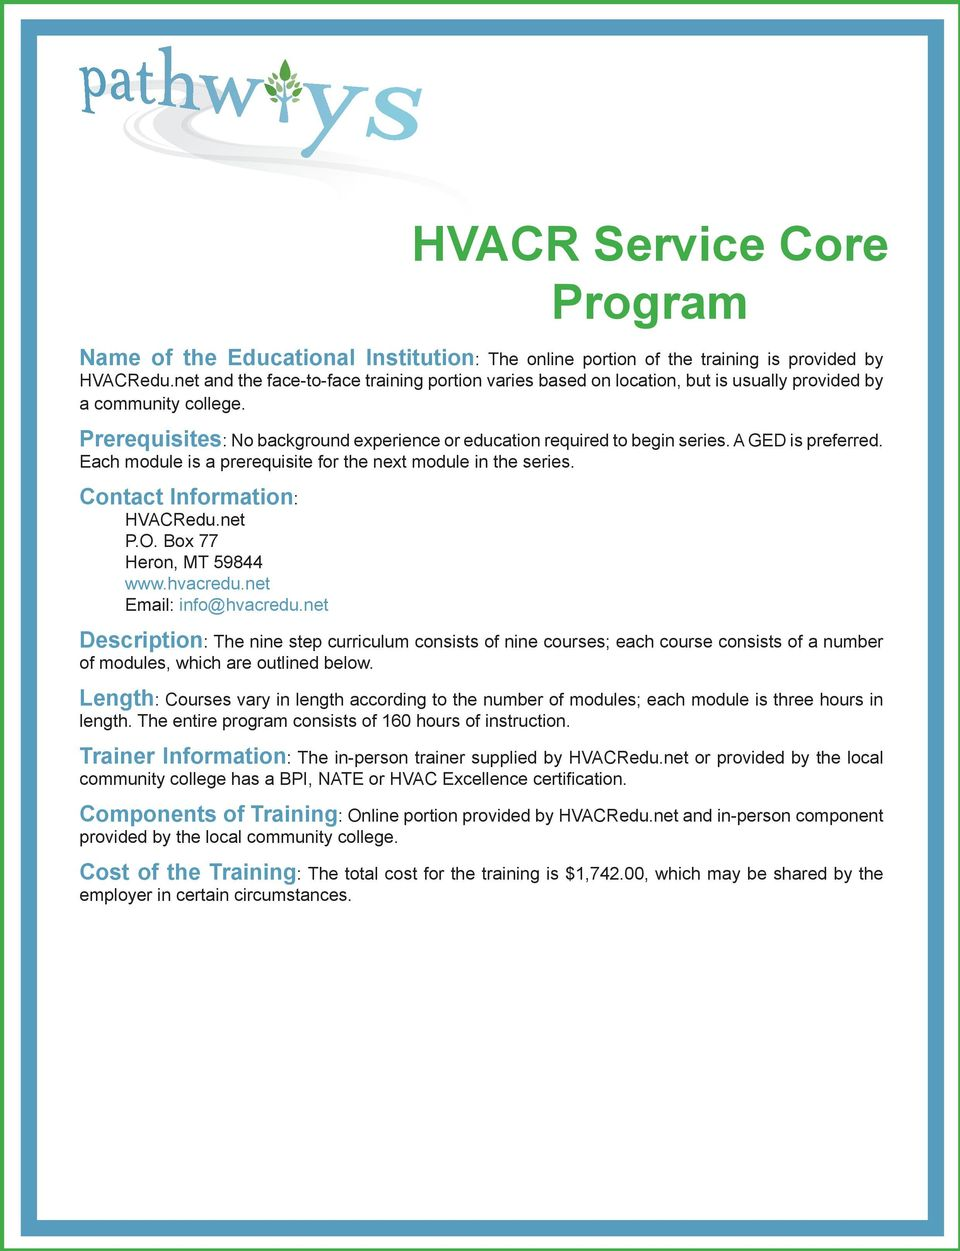 A GED is preferred. Each module is a prerequisite for the next module in the series. Contact Information: HVACRedu.net P.O. Box 77 Heron, MT 59844 www.hvacredu.net Email: info@hvacredu.